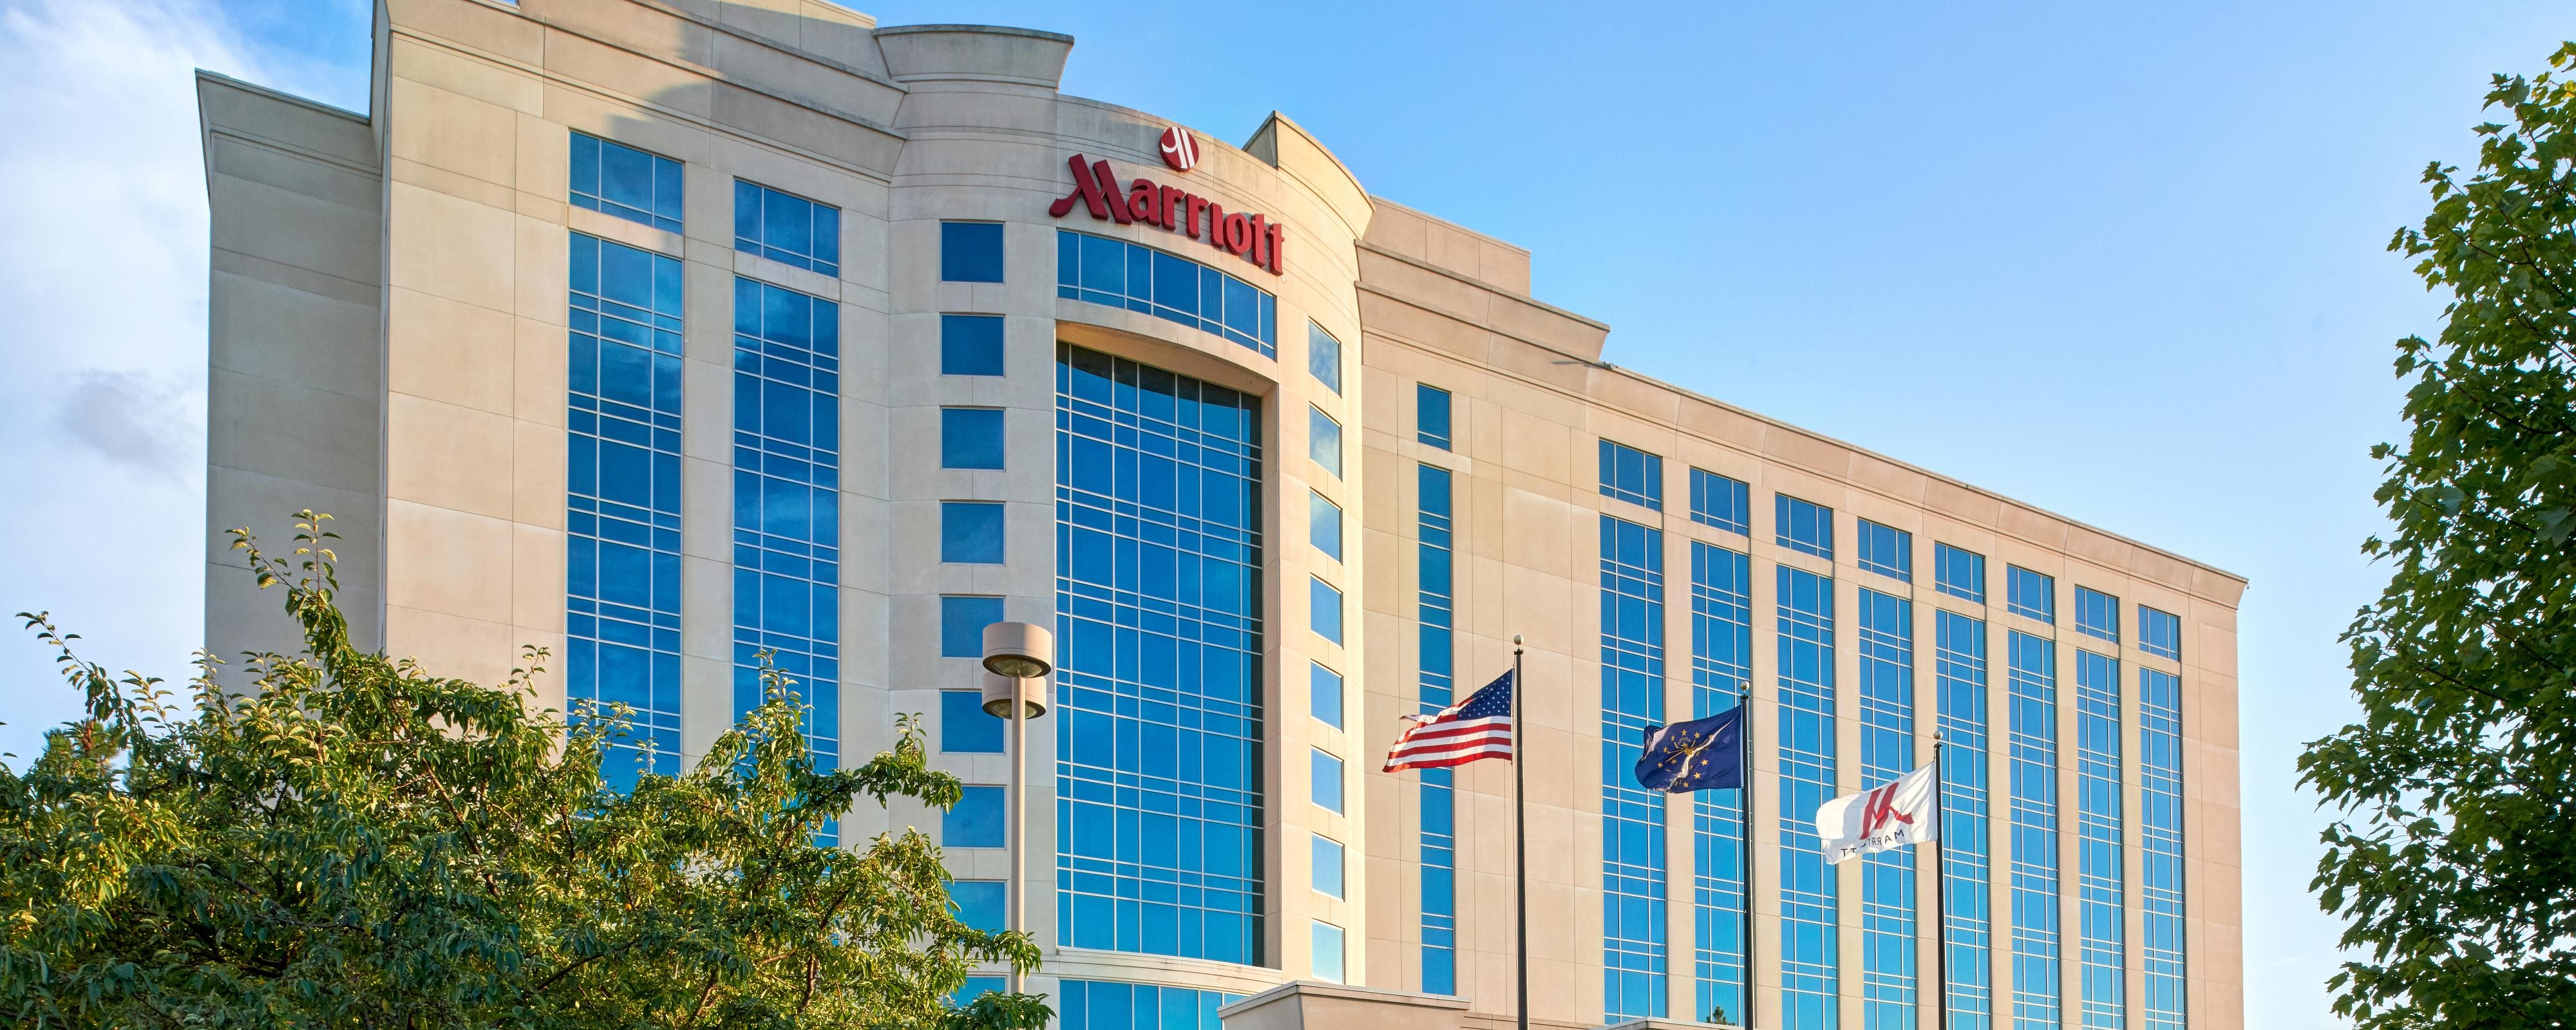 Indianapolis Events March 2020.Indianapolis Indiana Hotels Northside Marriott